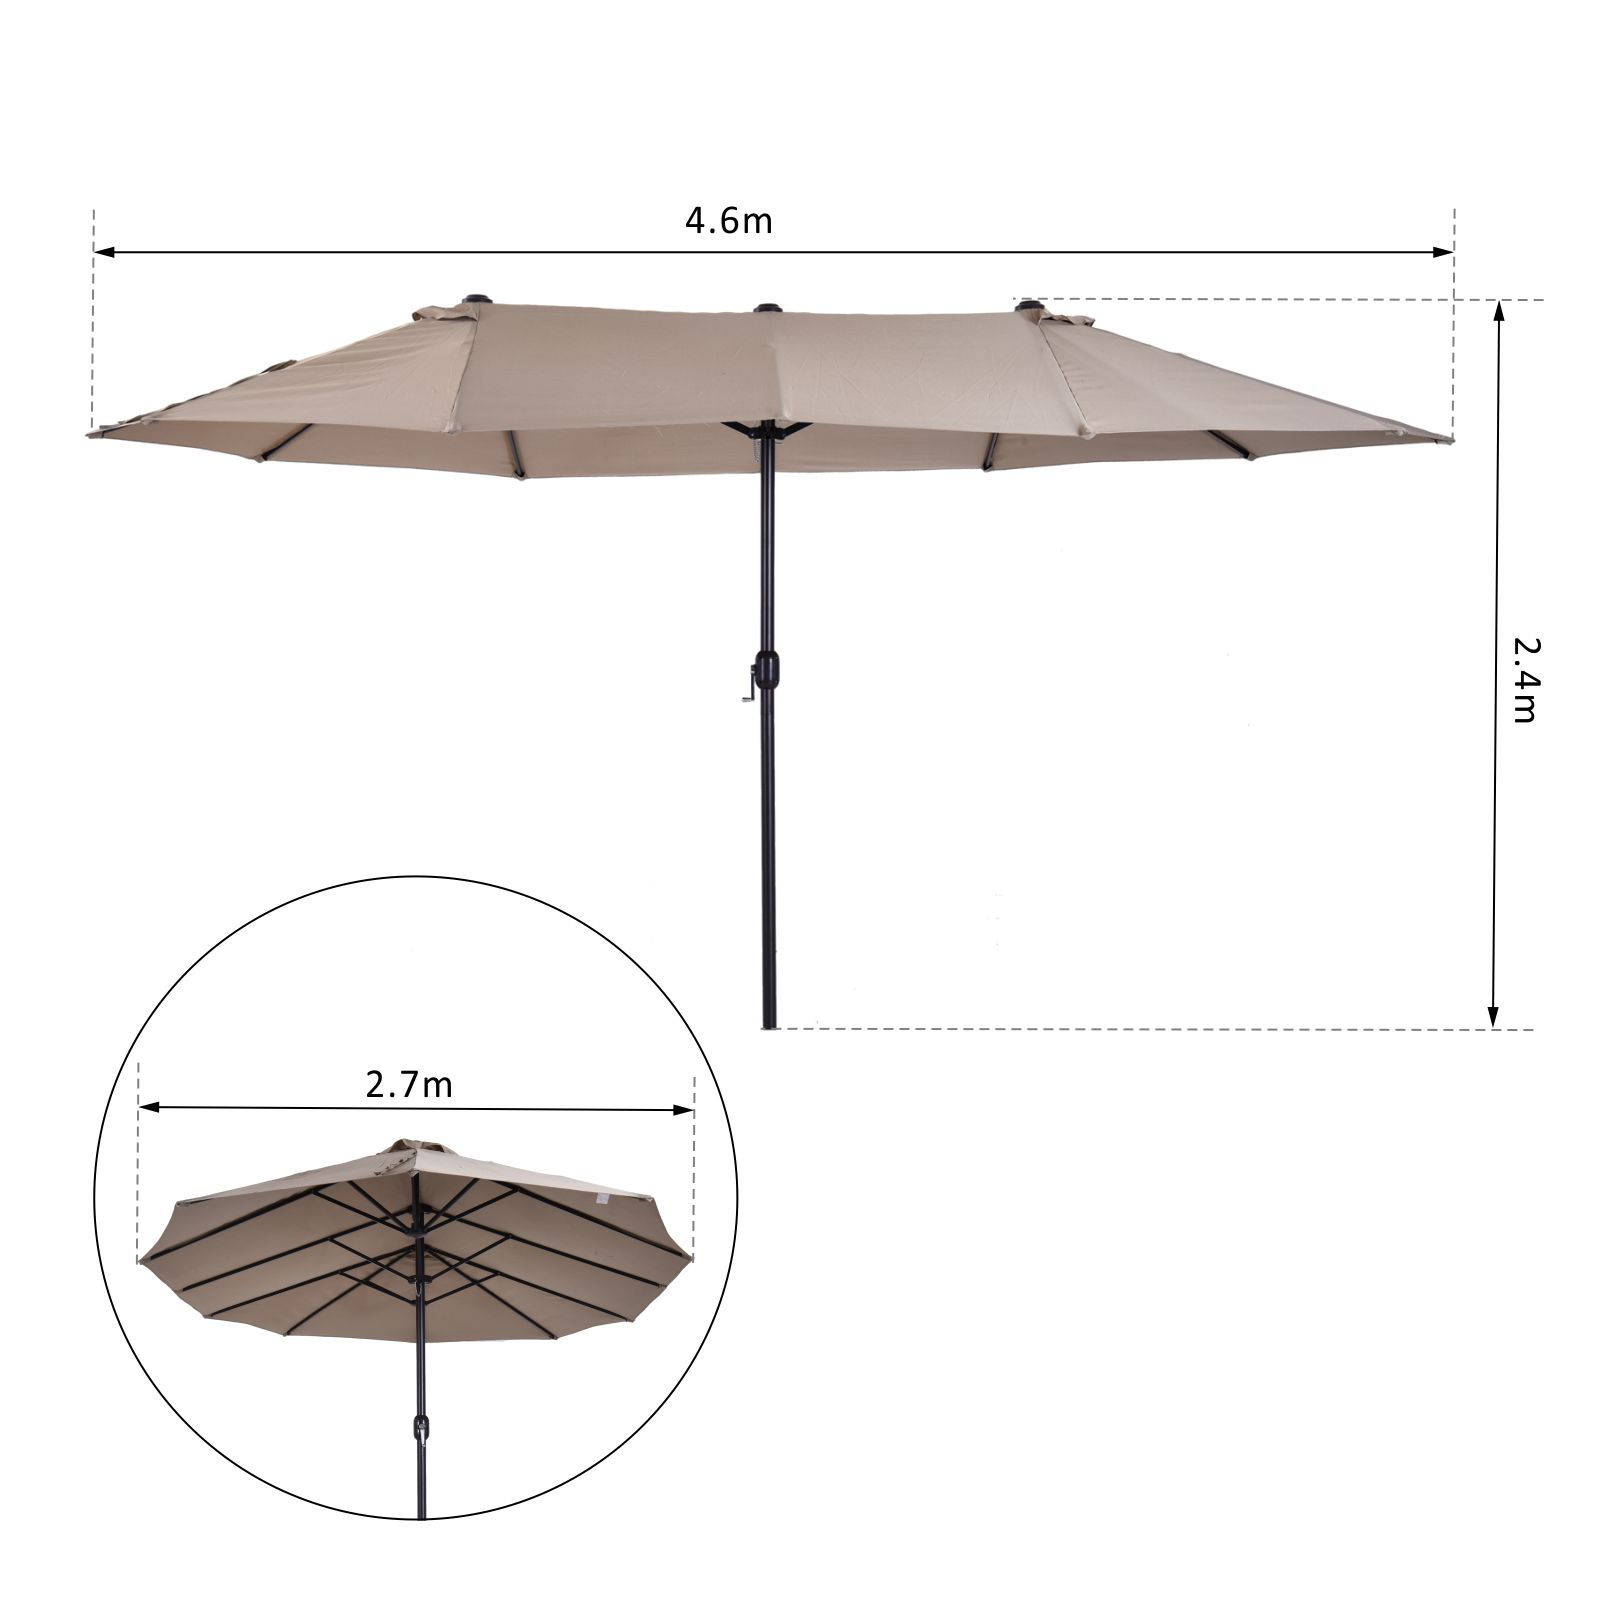 Outsunny 4 6m Sun Umbrella Parasol Umbrella Double Sided